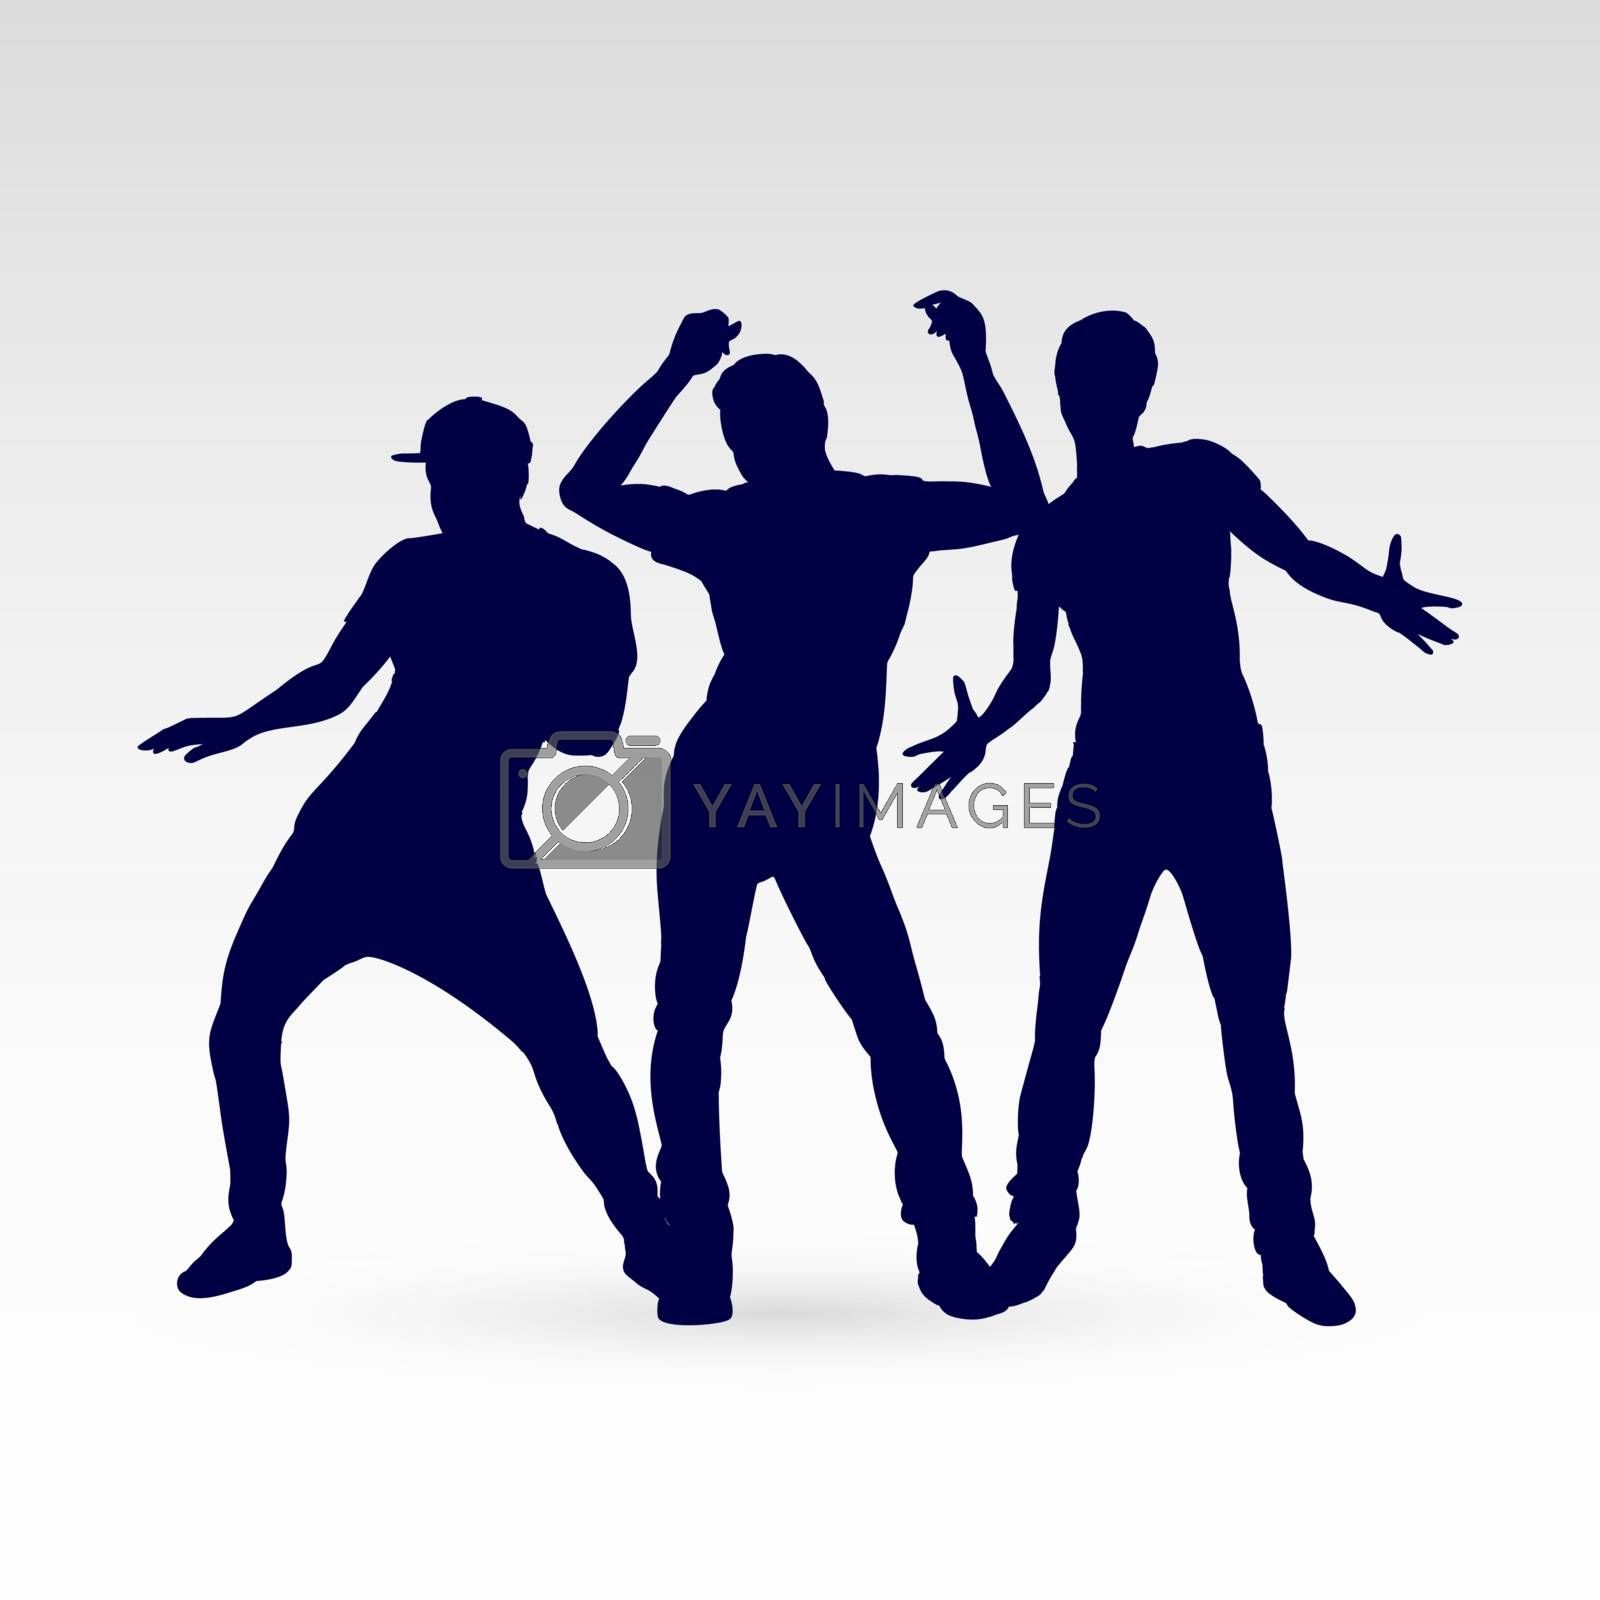 Set of Silhouette Dancing Males in Different Poses on the Dance Floor for Desgin Templates